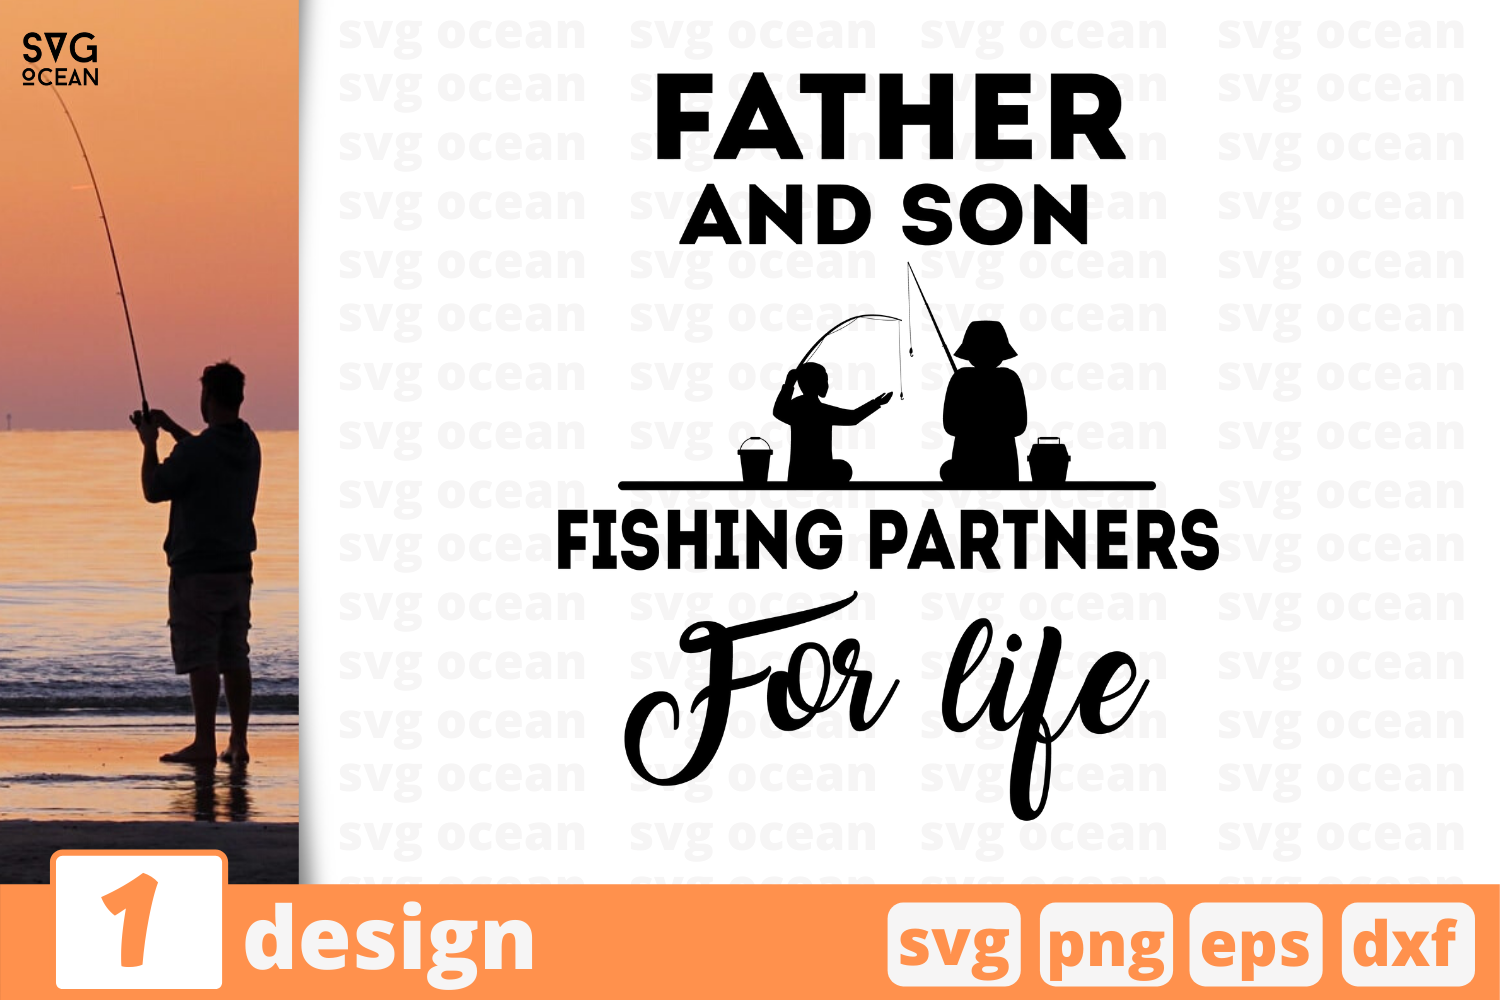 Download Free Father Son Fishing Partners Graphic By Svgocean Creative Fabrica for Cricut Explore, Silhouette and other cutting machines.